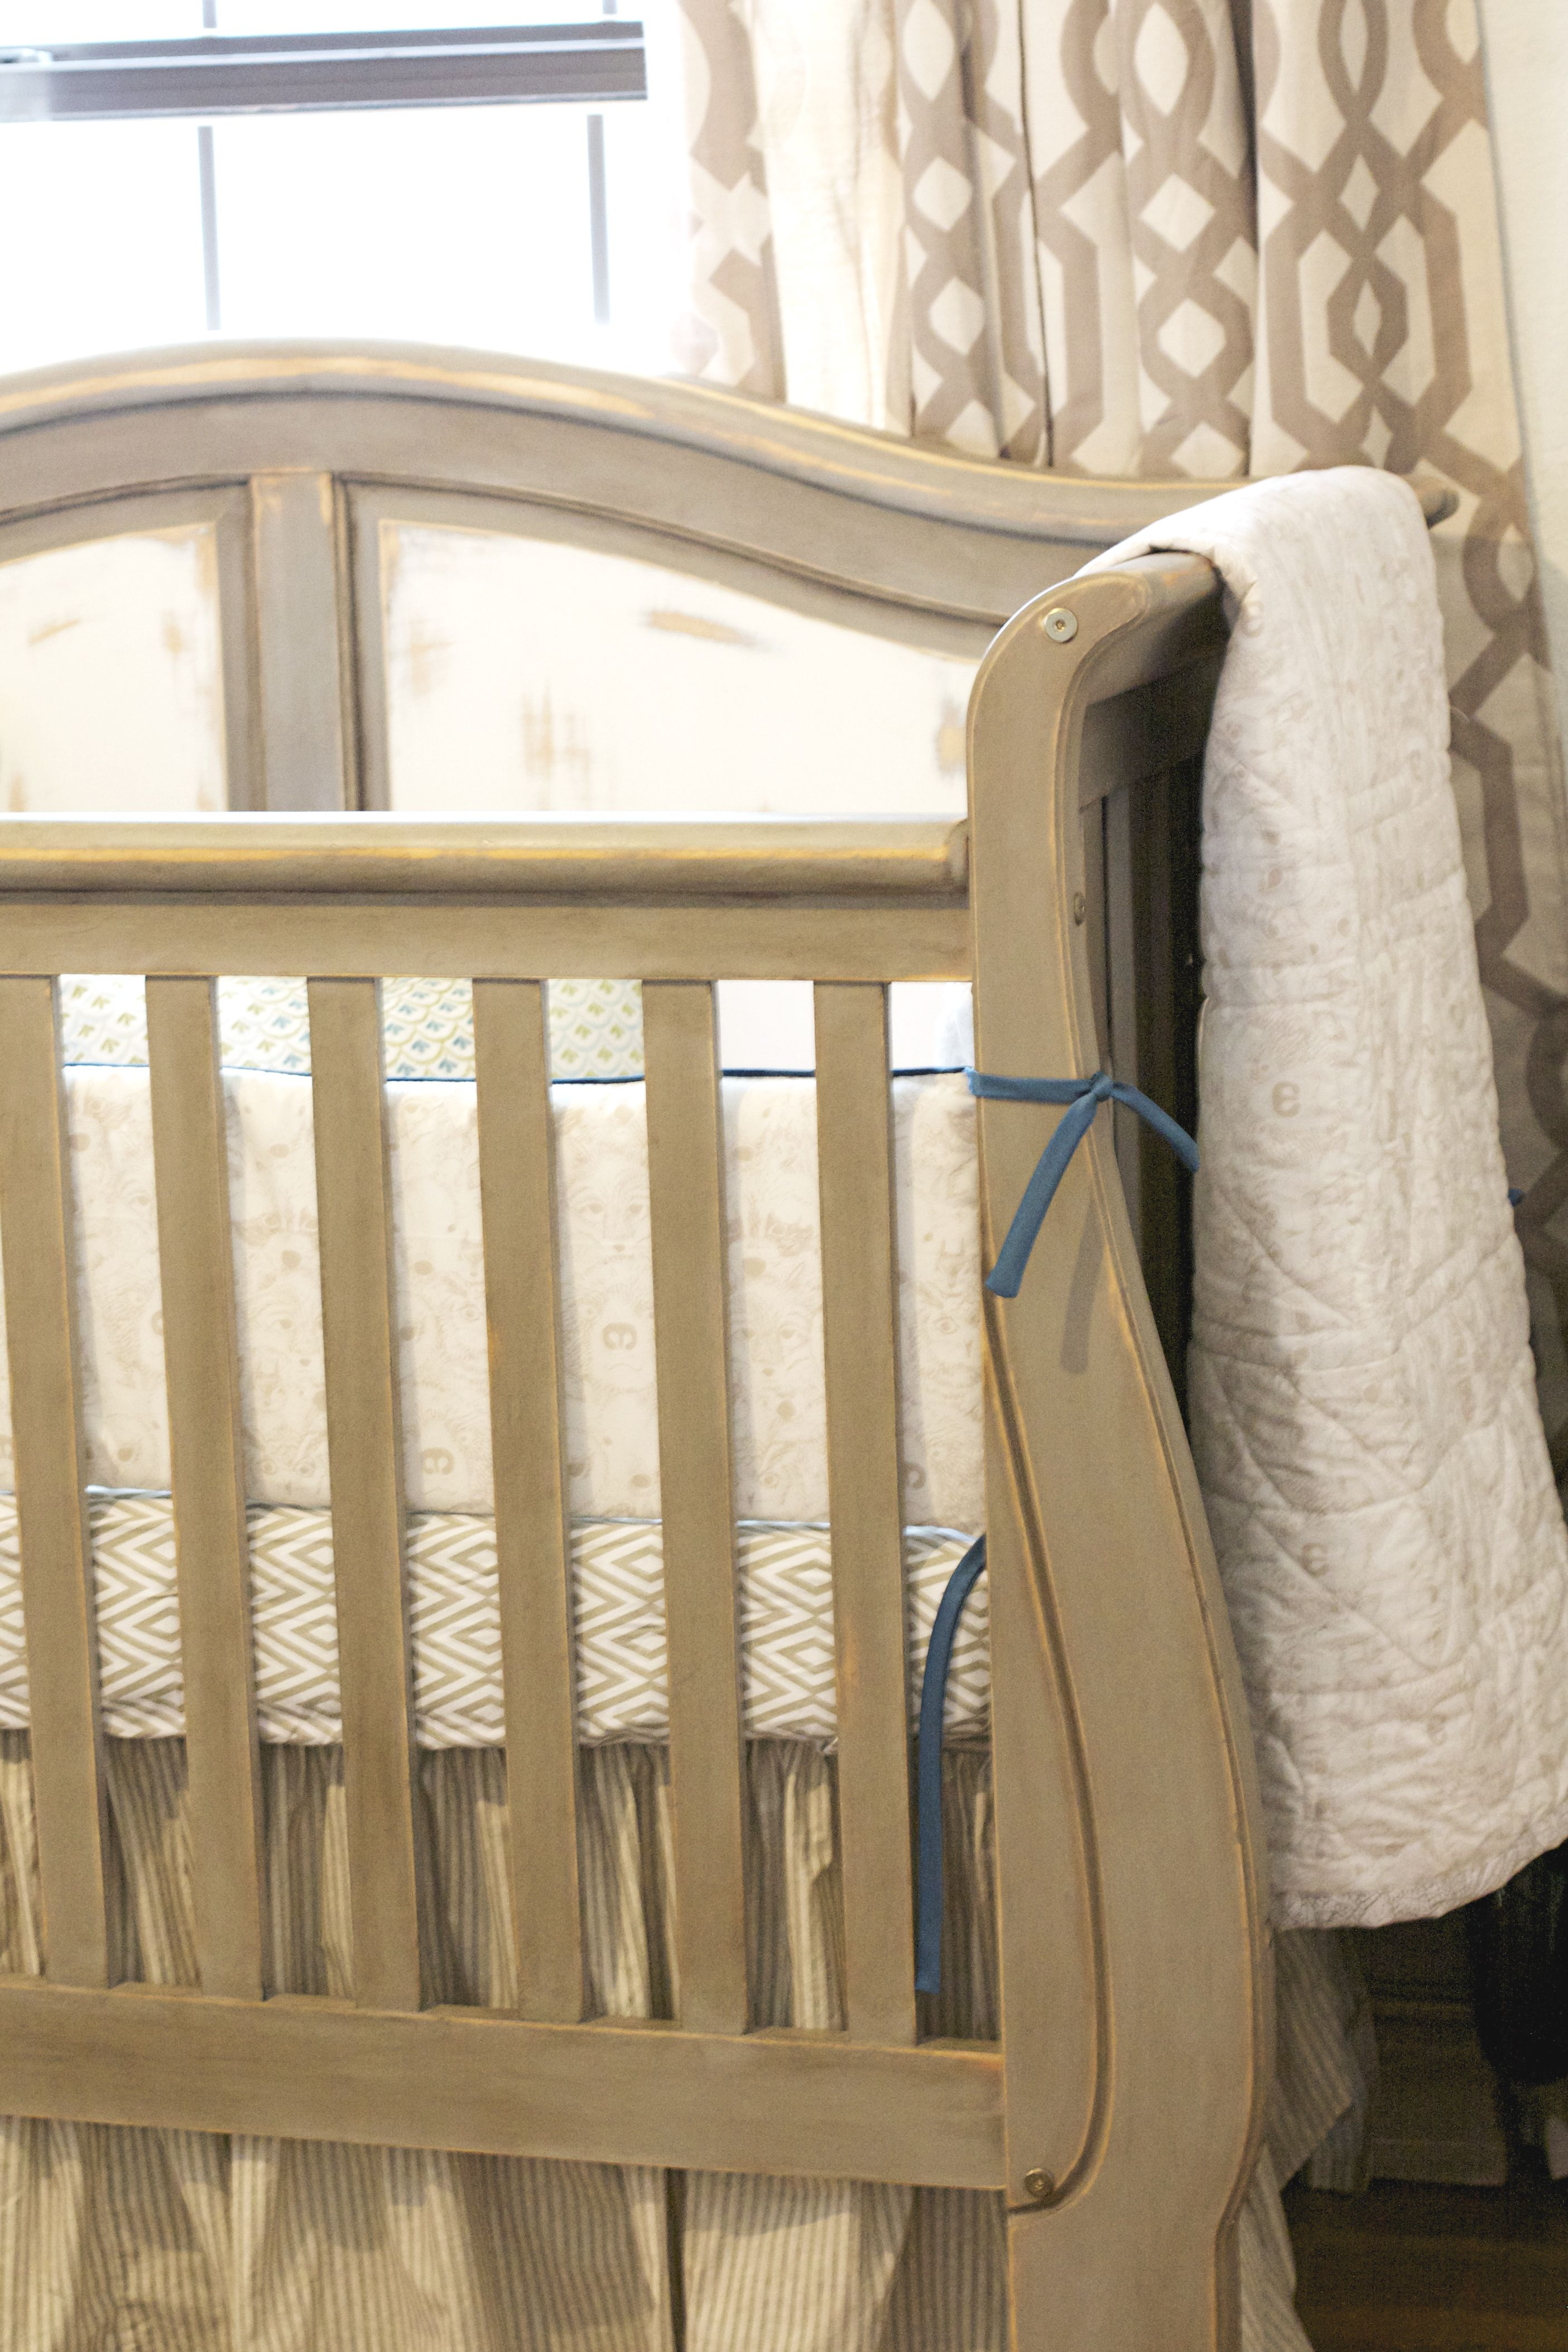 Brookfield fixed gate crib for sale - Vintage Rustic Country Nursery Crib Is Painted In Annie Sloan Chalk Paint French Linen